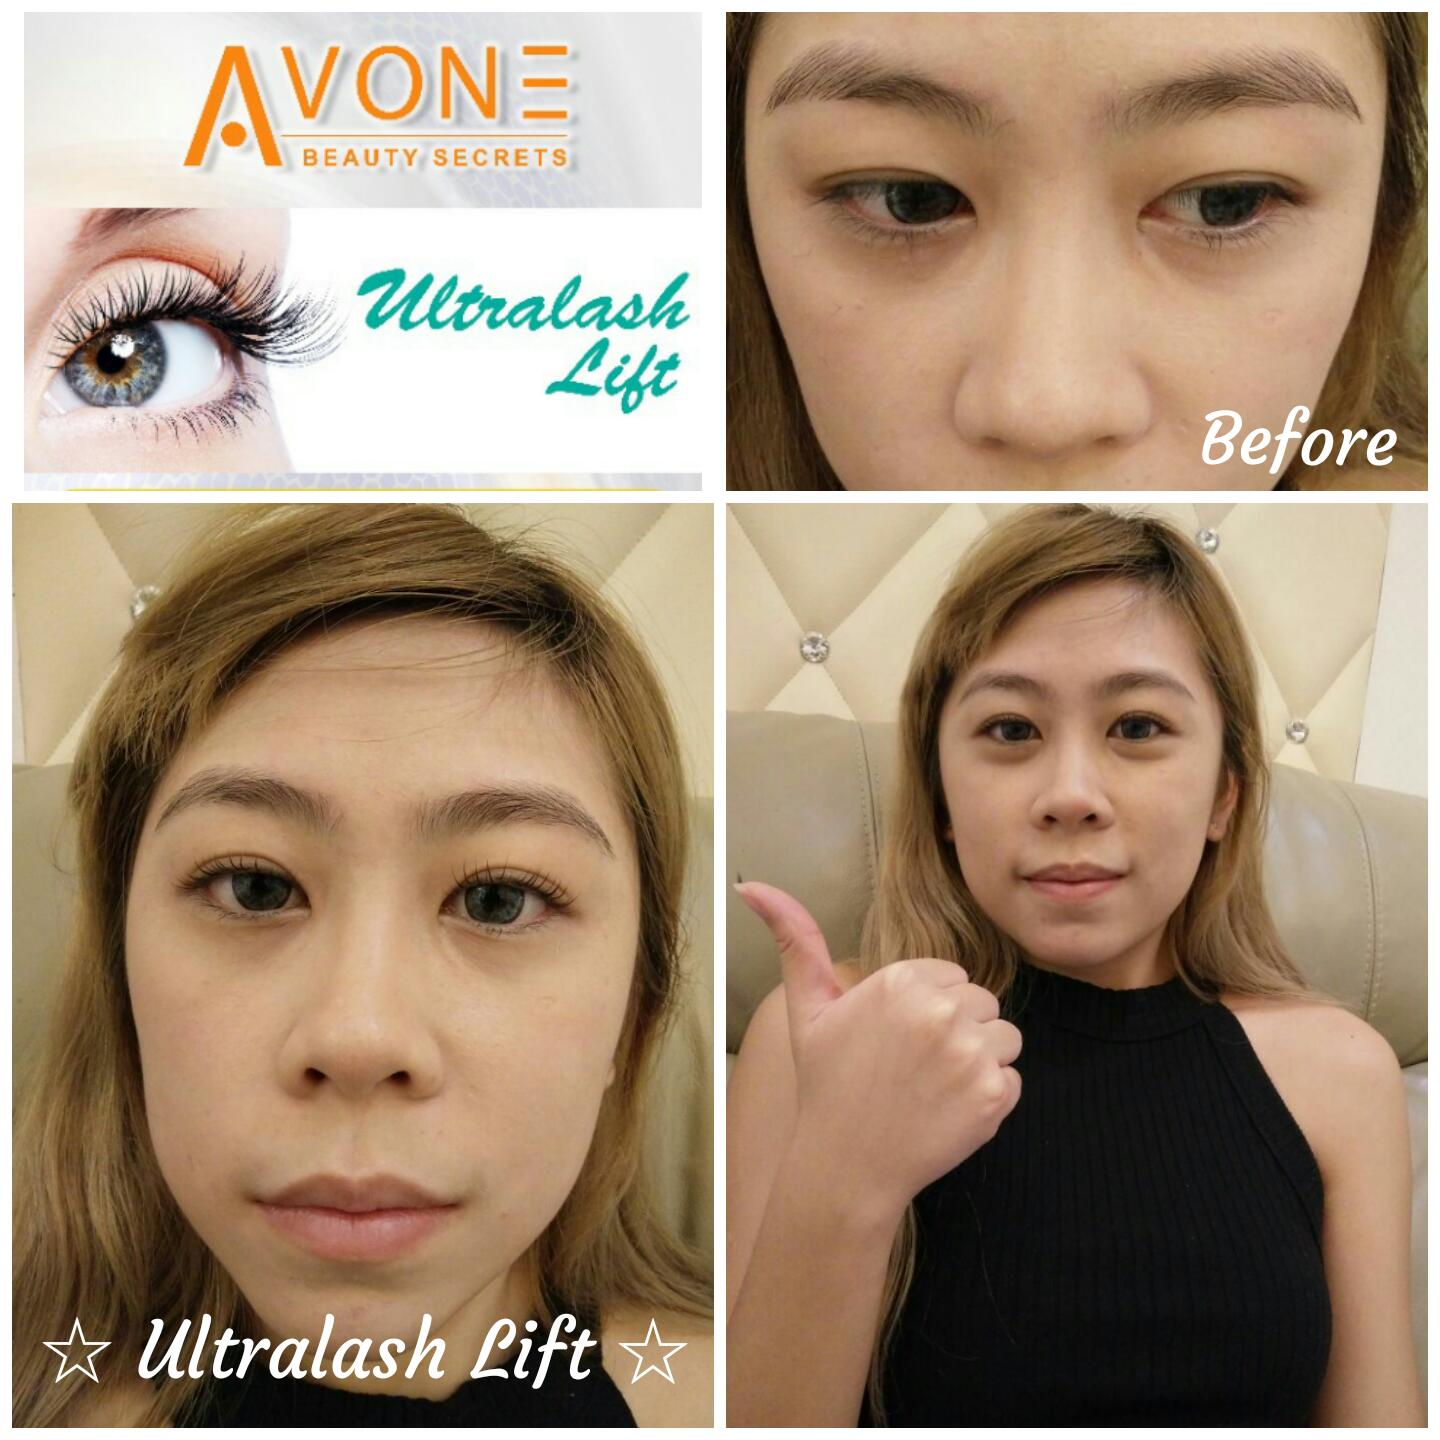 b4a64416360 You can continue to put XLash Pro serum at lash base if necessary.  (Applicable only for those on Ultralash Regrowth Program). ultralashlift+ tint